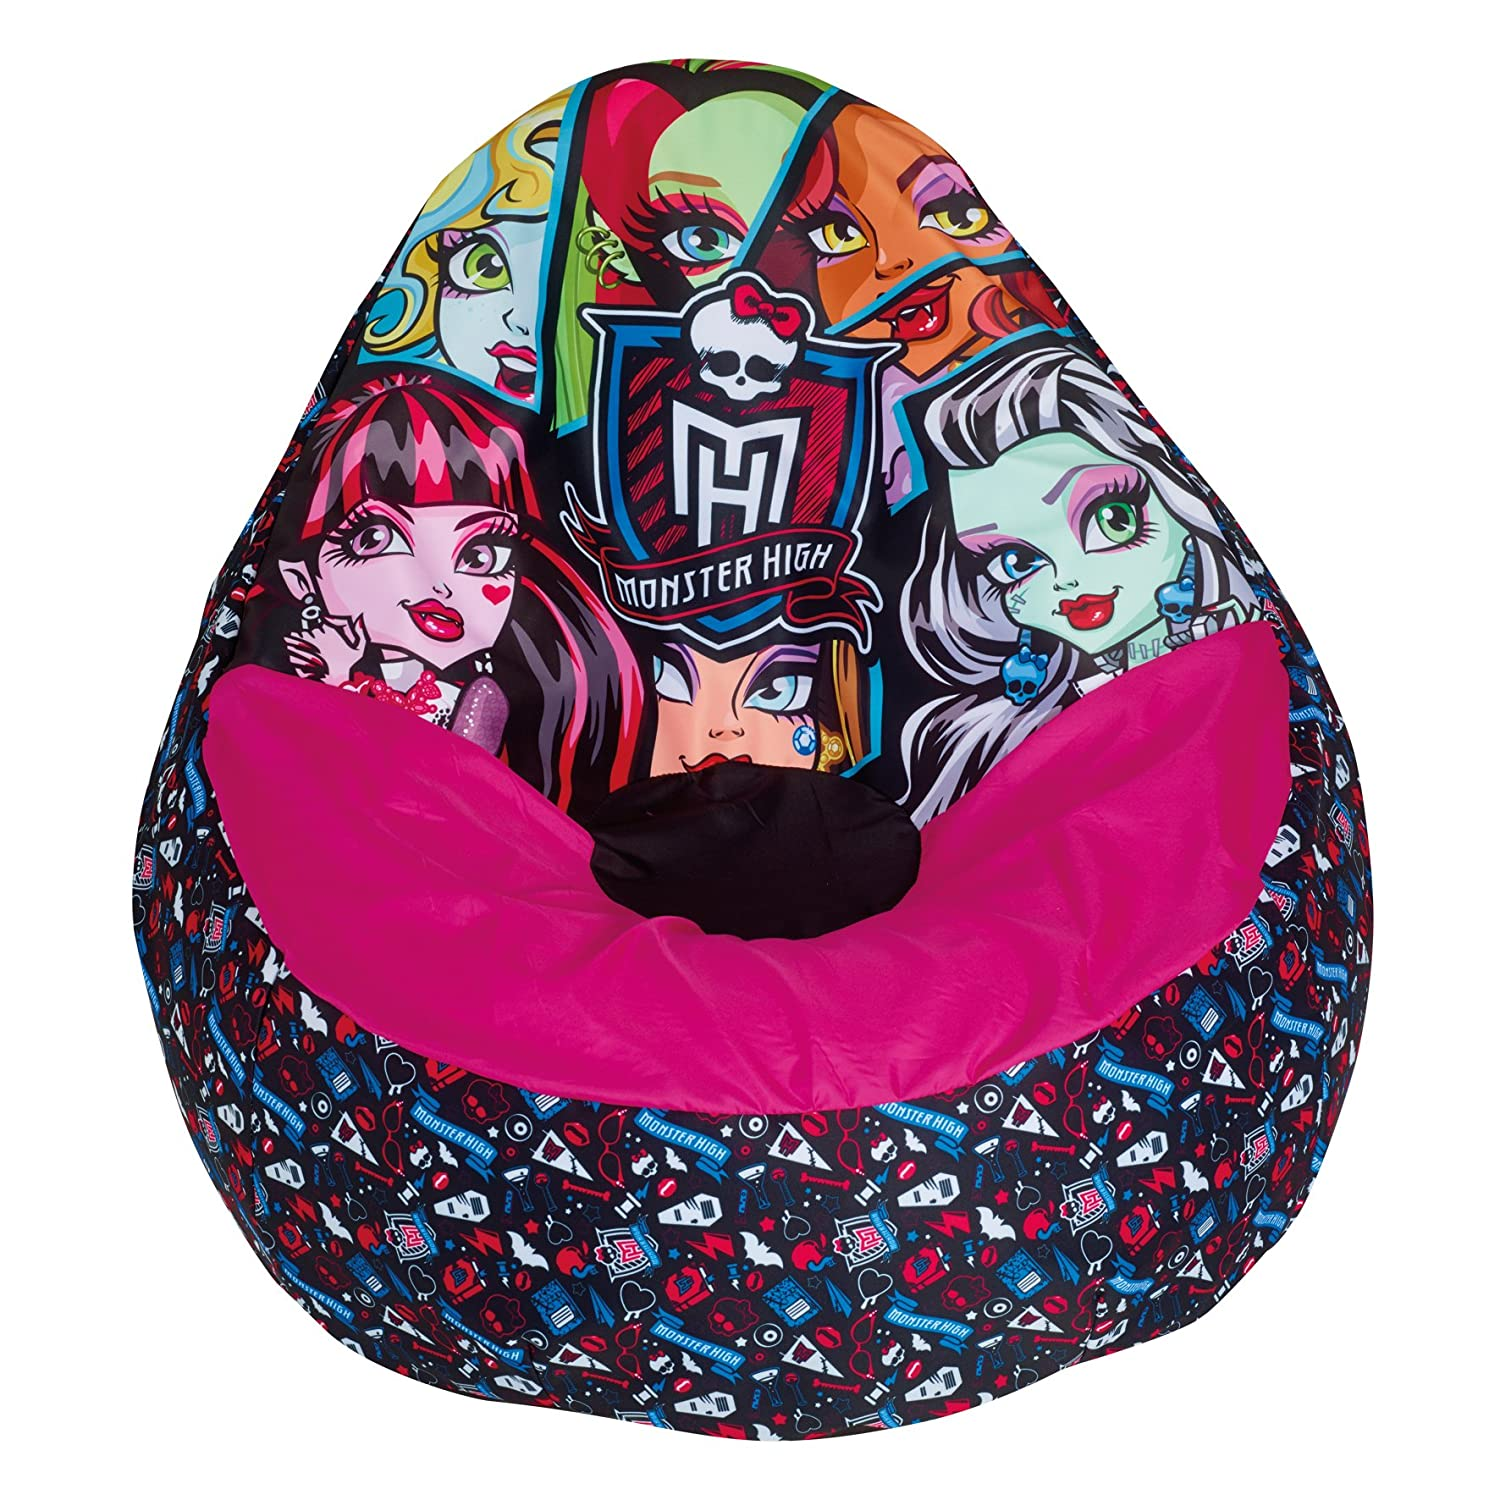 Monster High Inflatable Chair Amazon Kitchen & Home